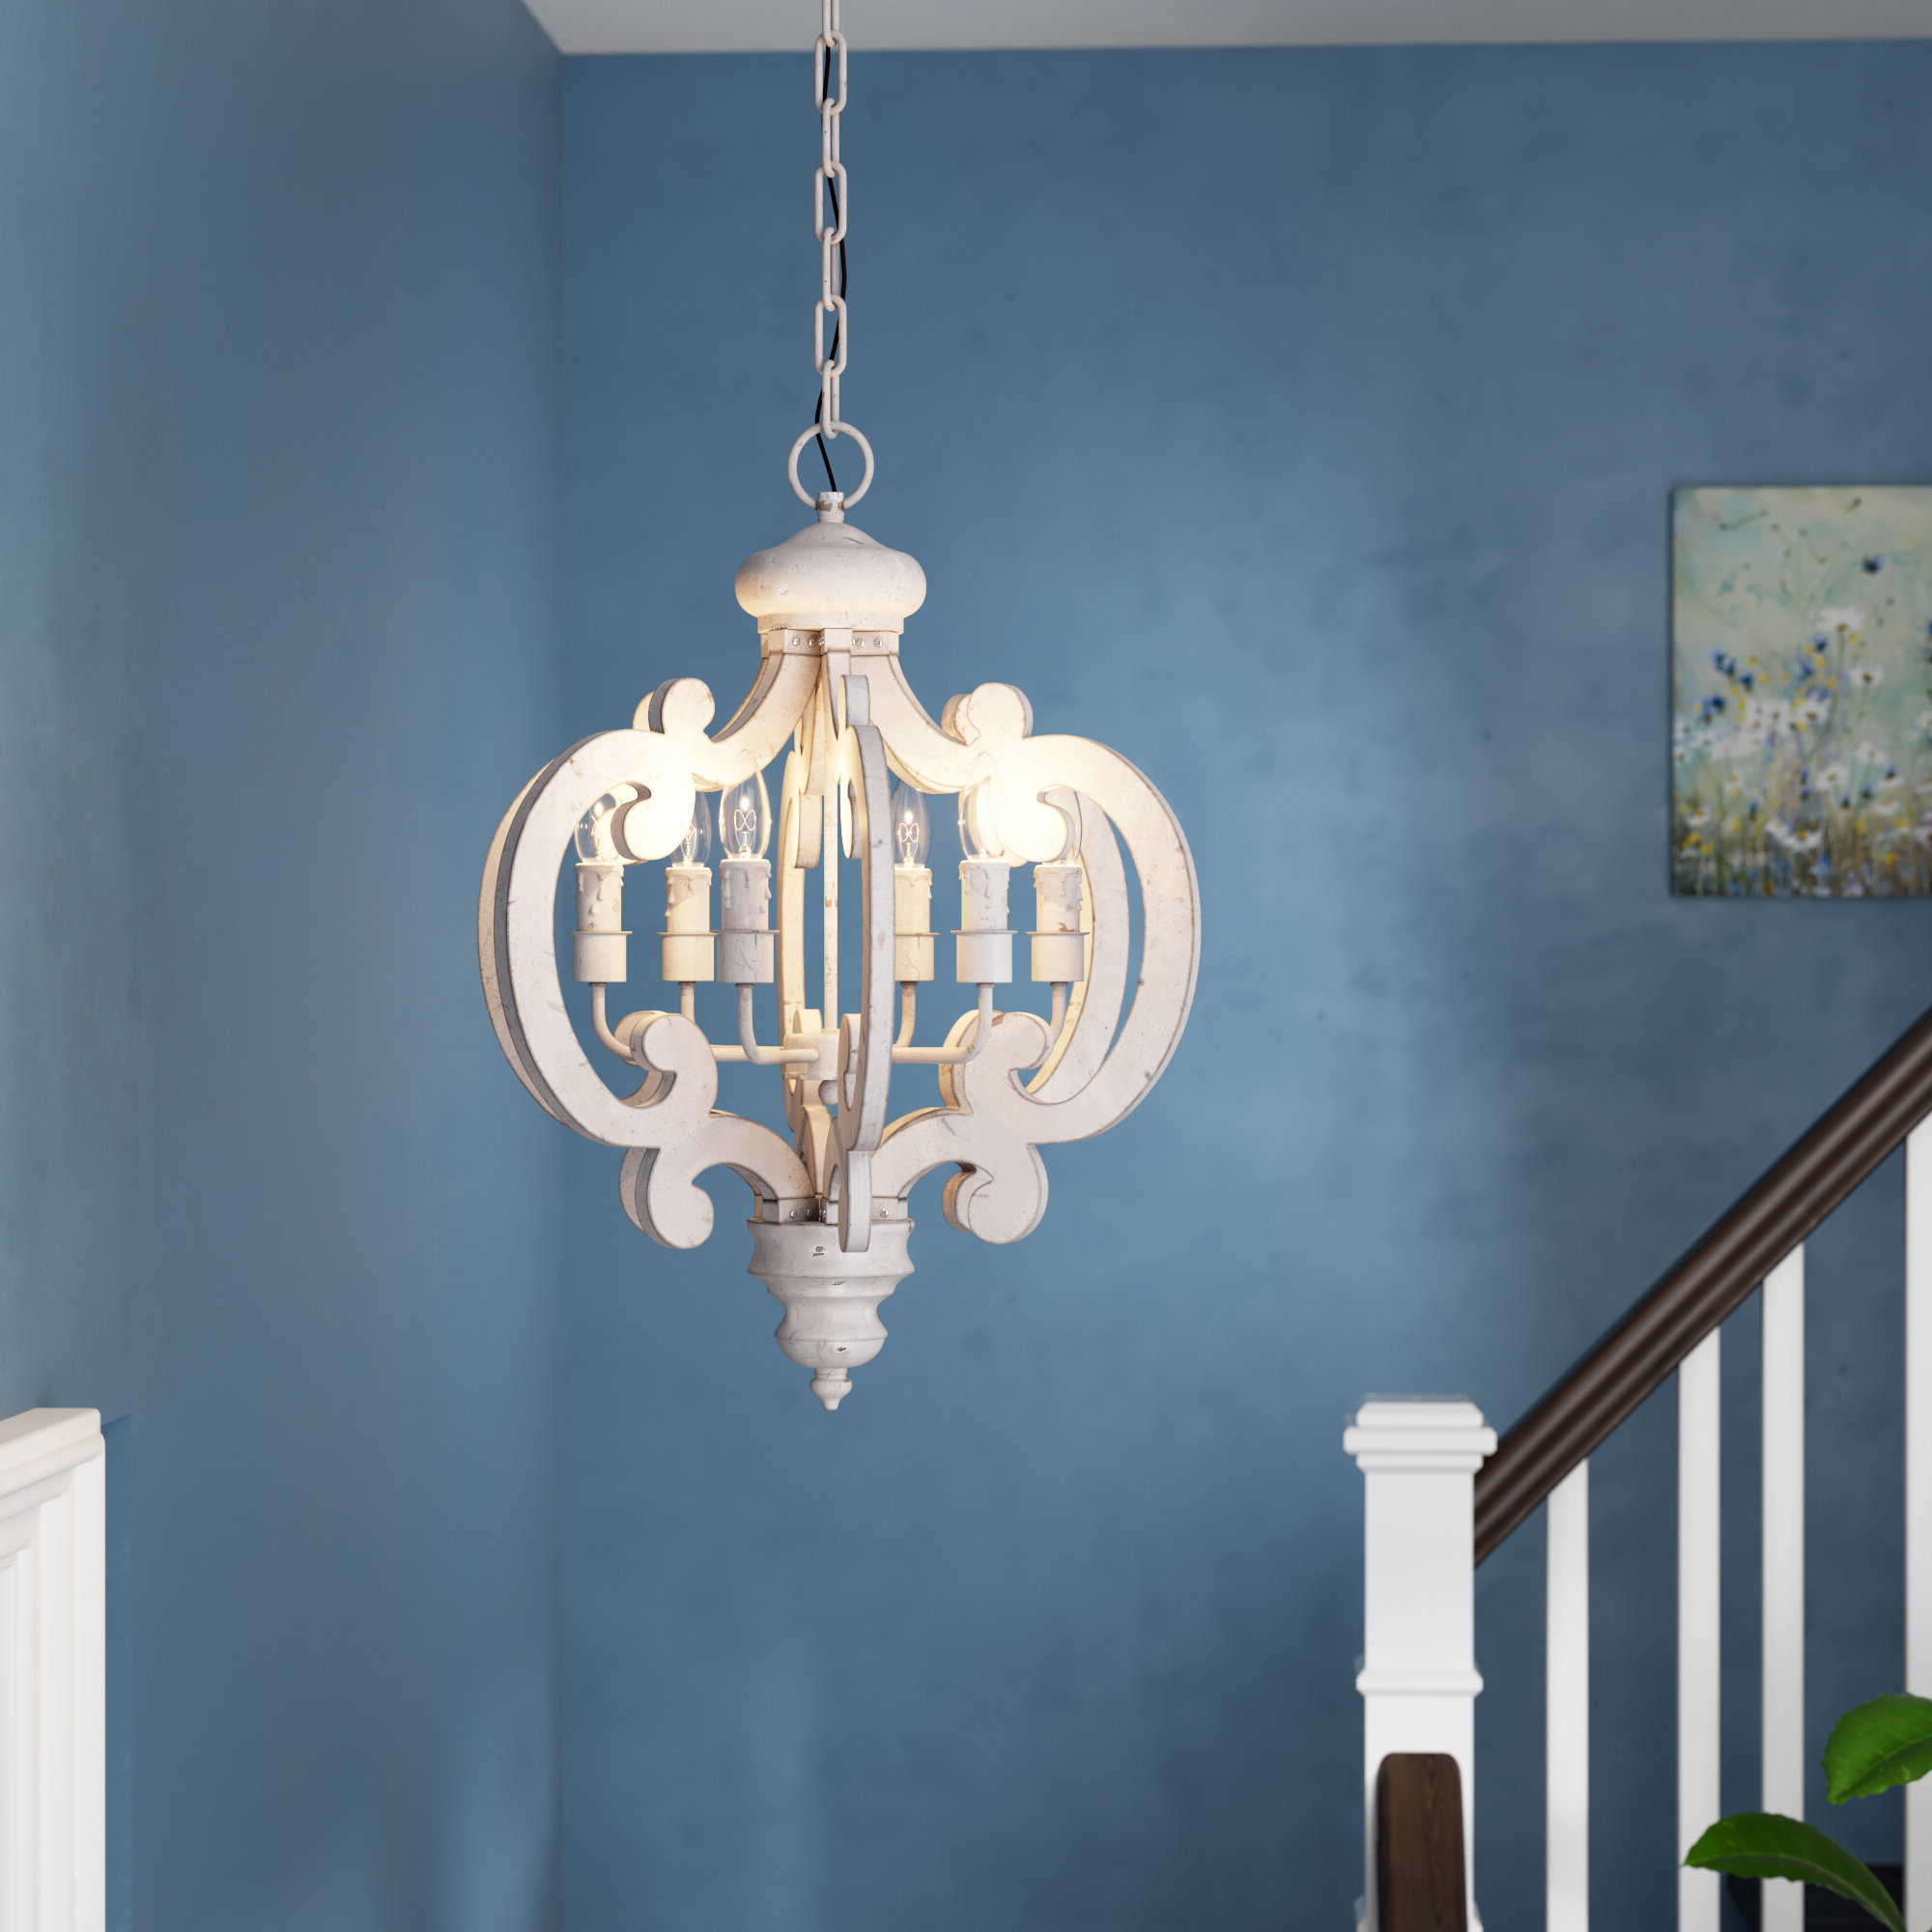 Bennington Chandelier 6 Light (View 5 of 20)